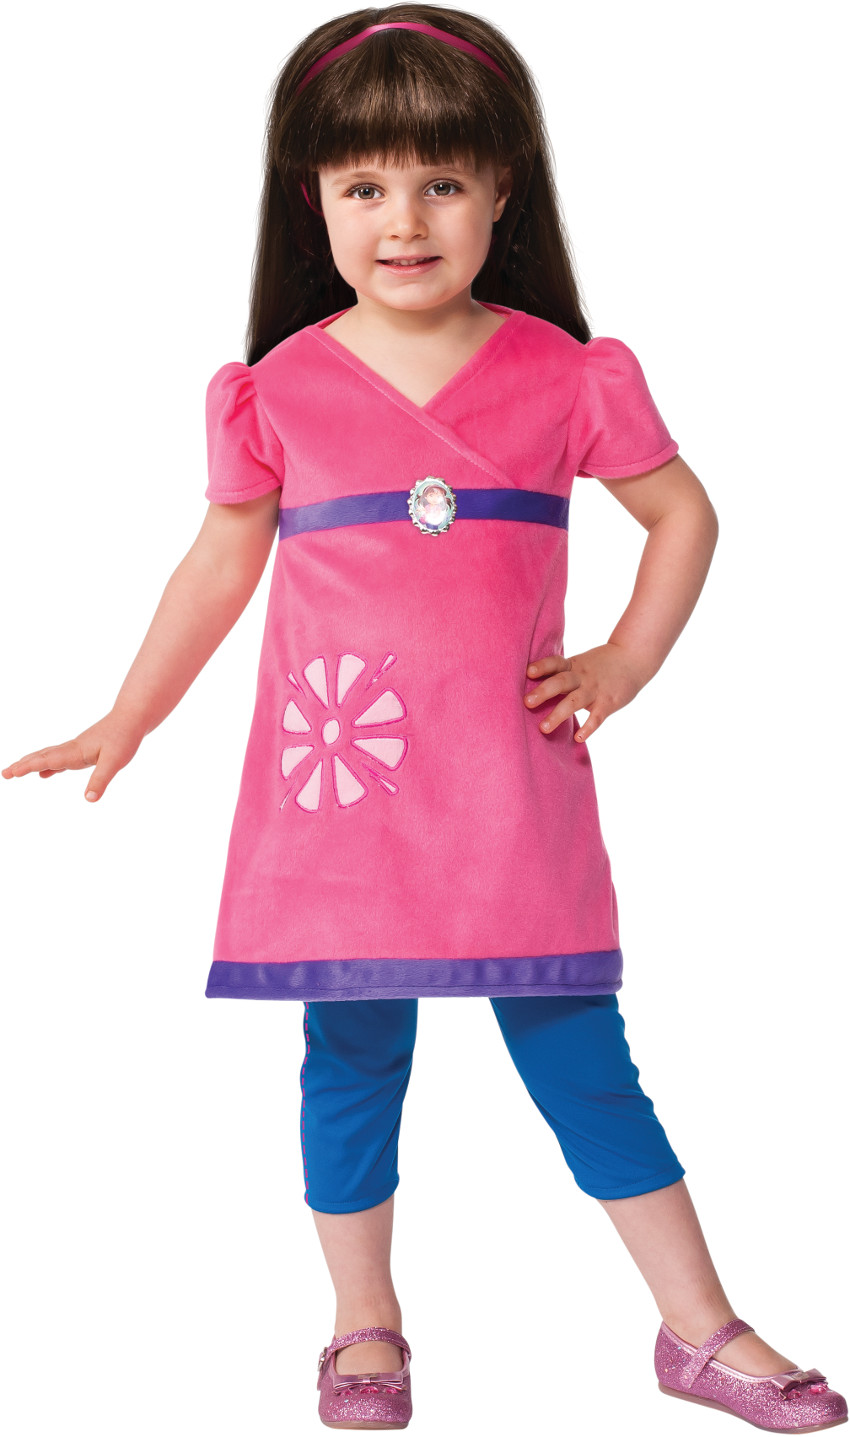 Toddler's Nickelodeon Cartoon Dora The Explorer And Friends Costume 2T-4T by Rubies Costume Co